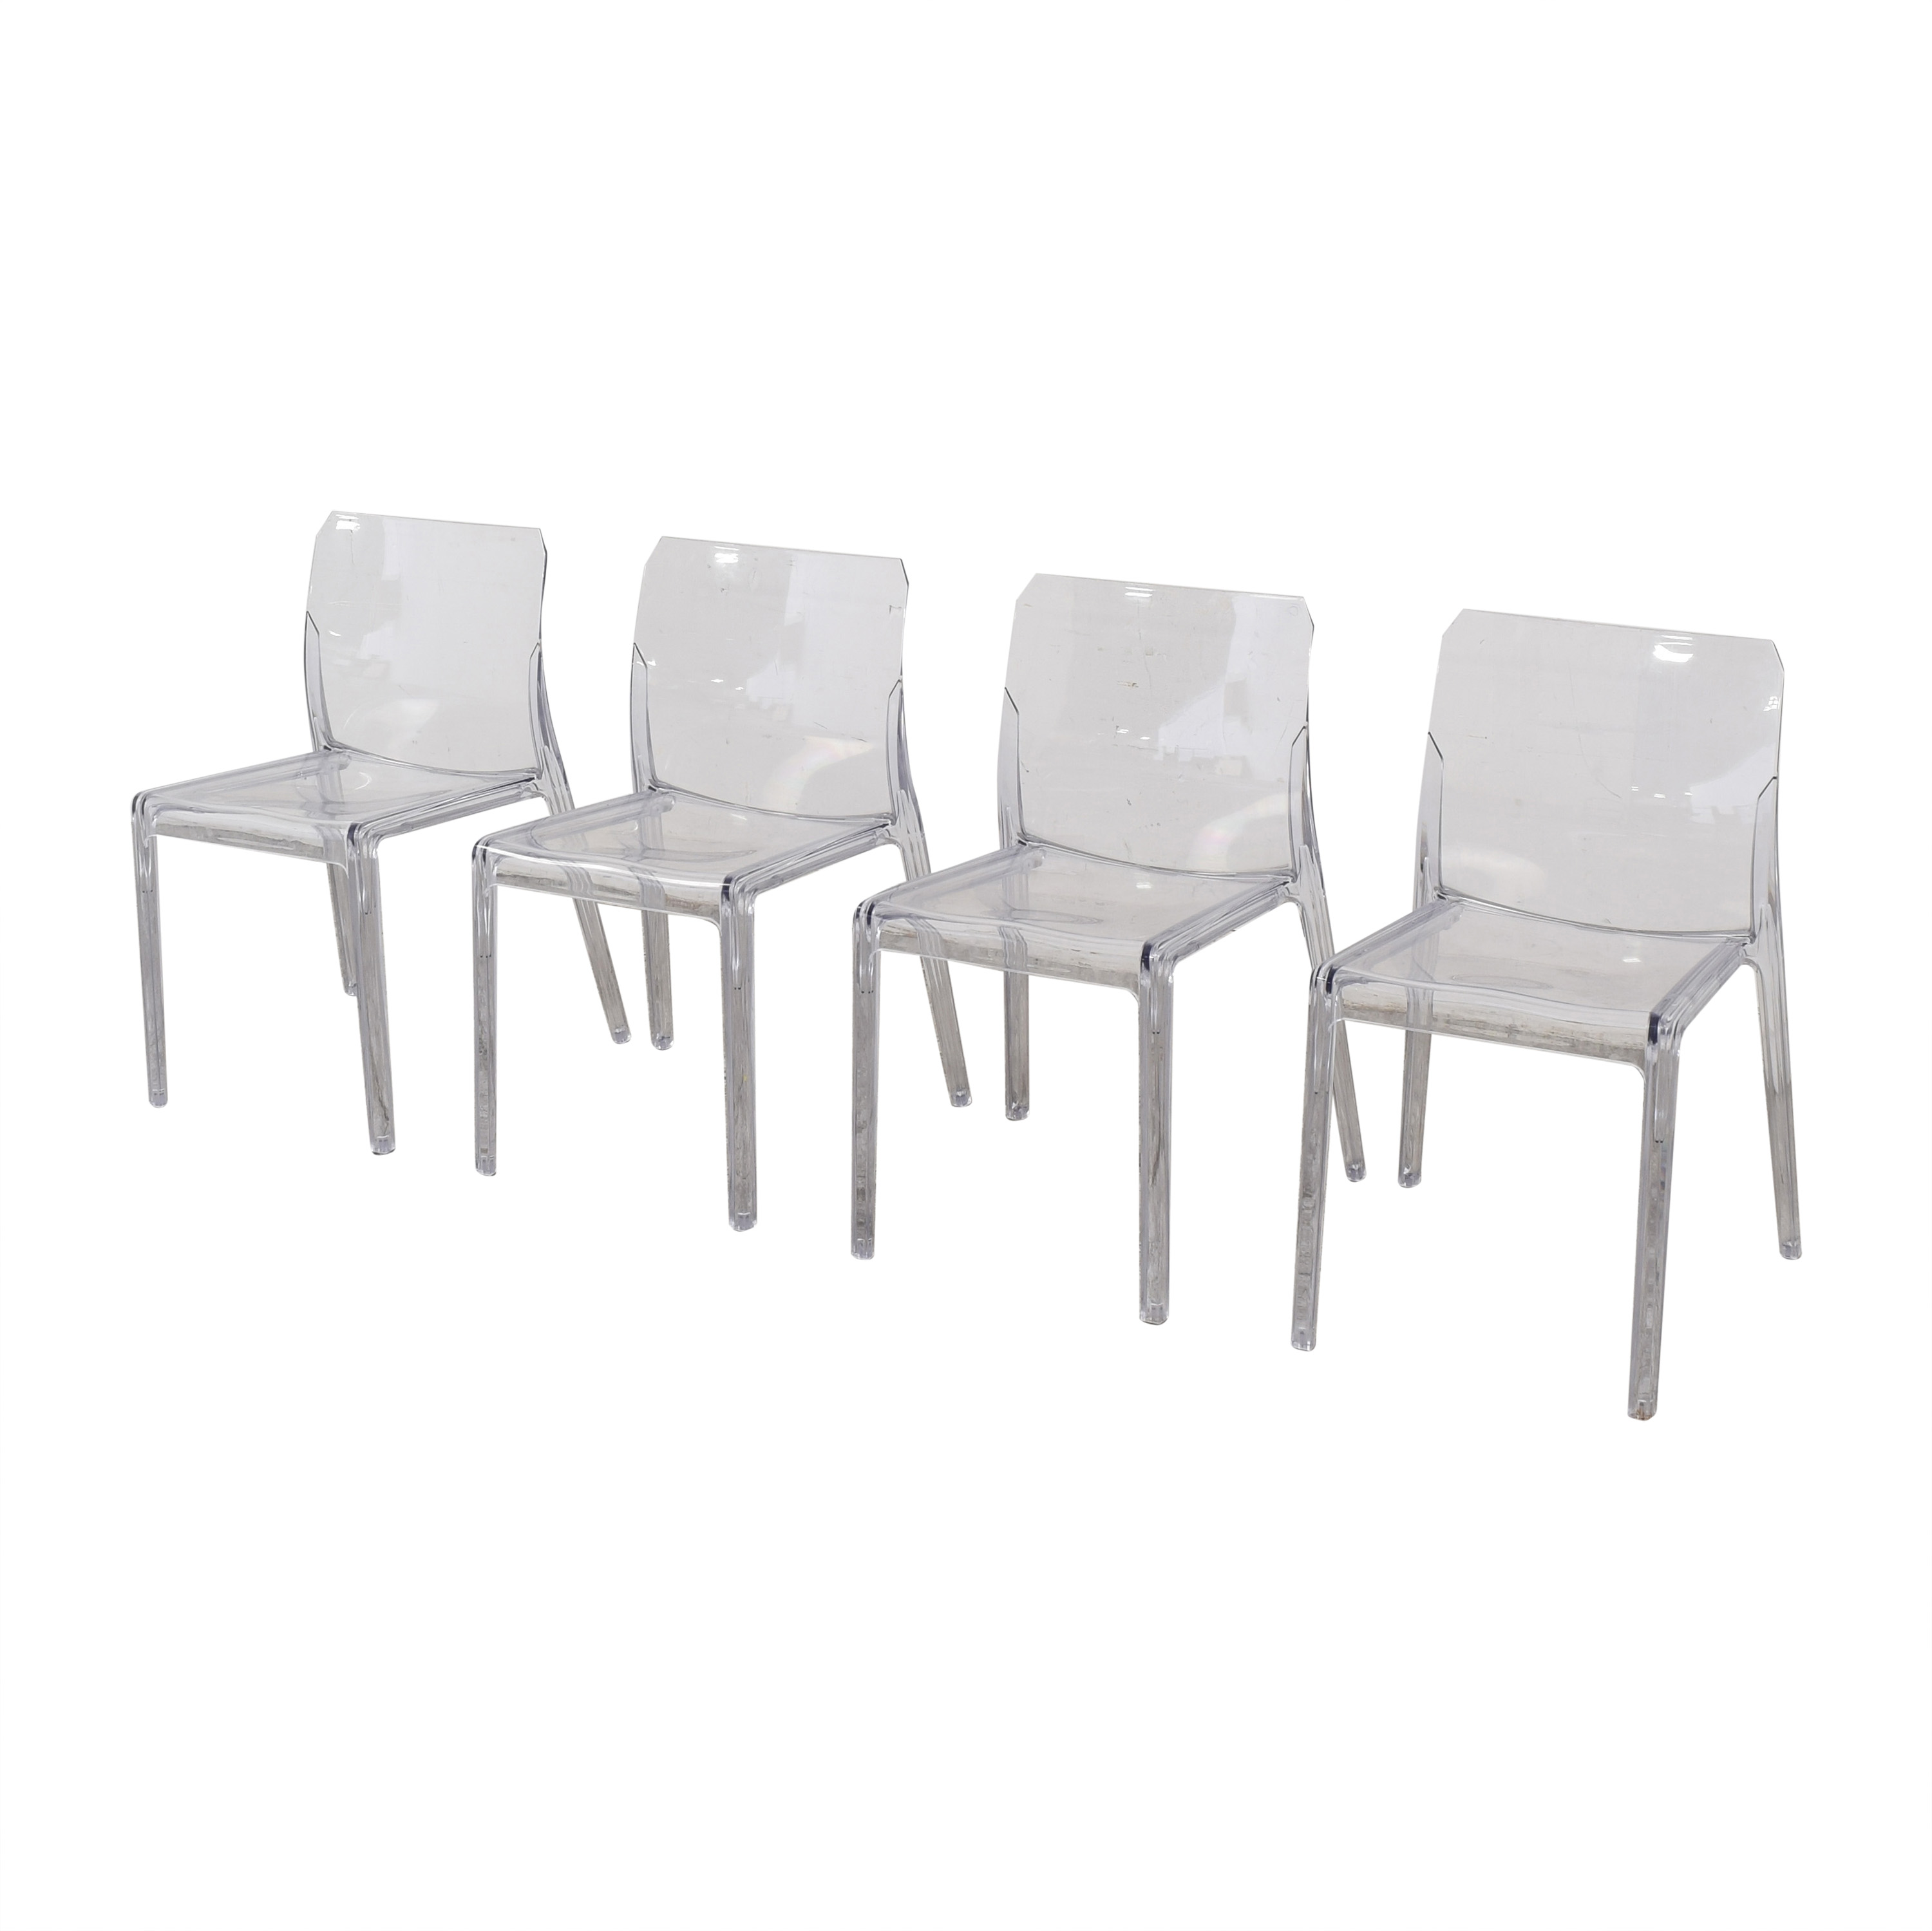 CB2 CB2 Bolla Clear Dining Chairs used